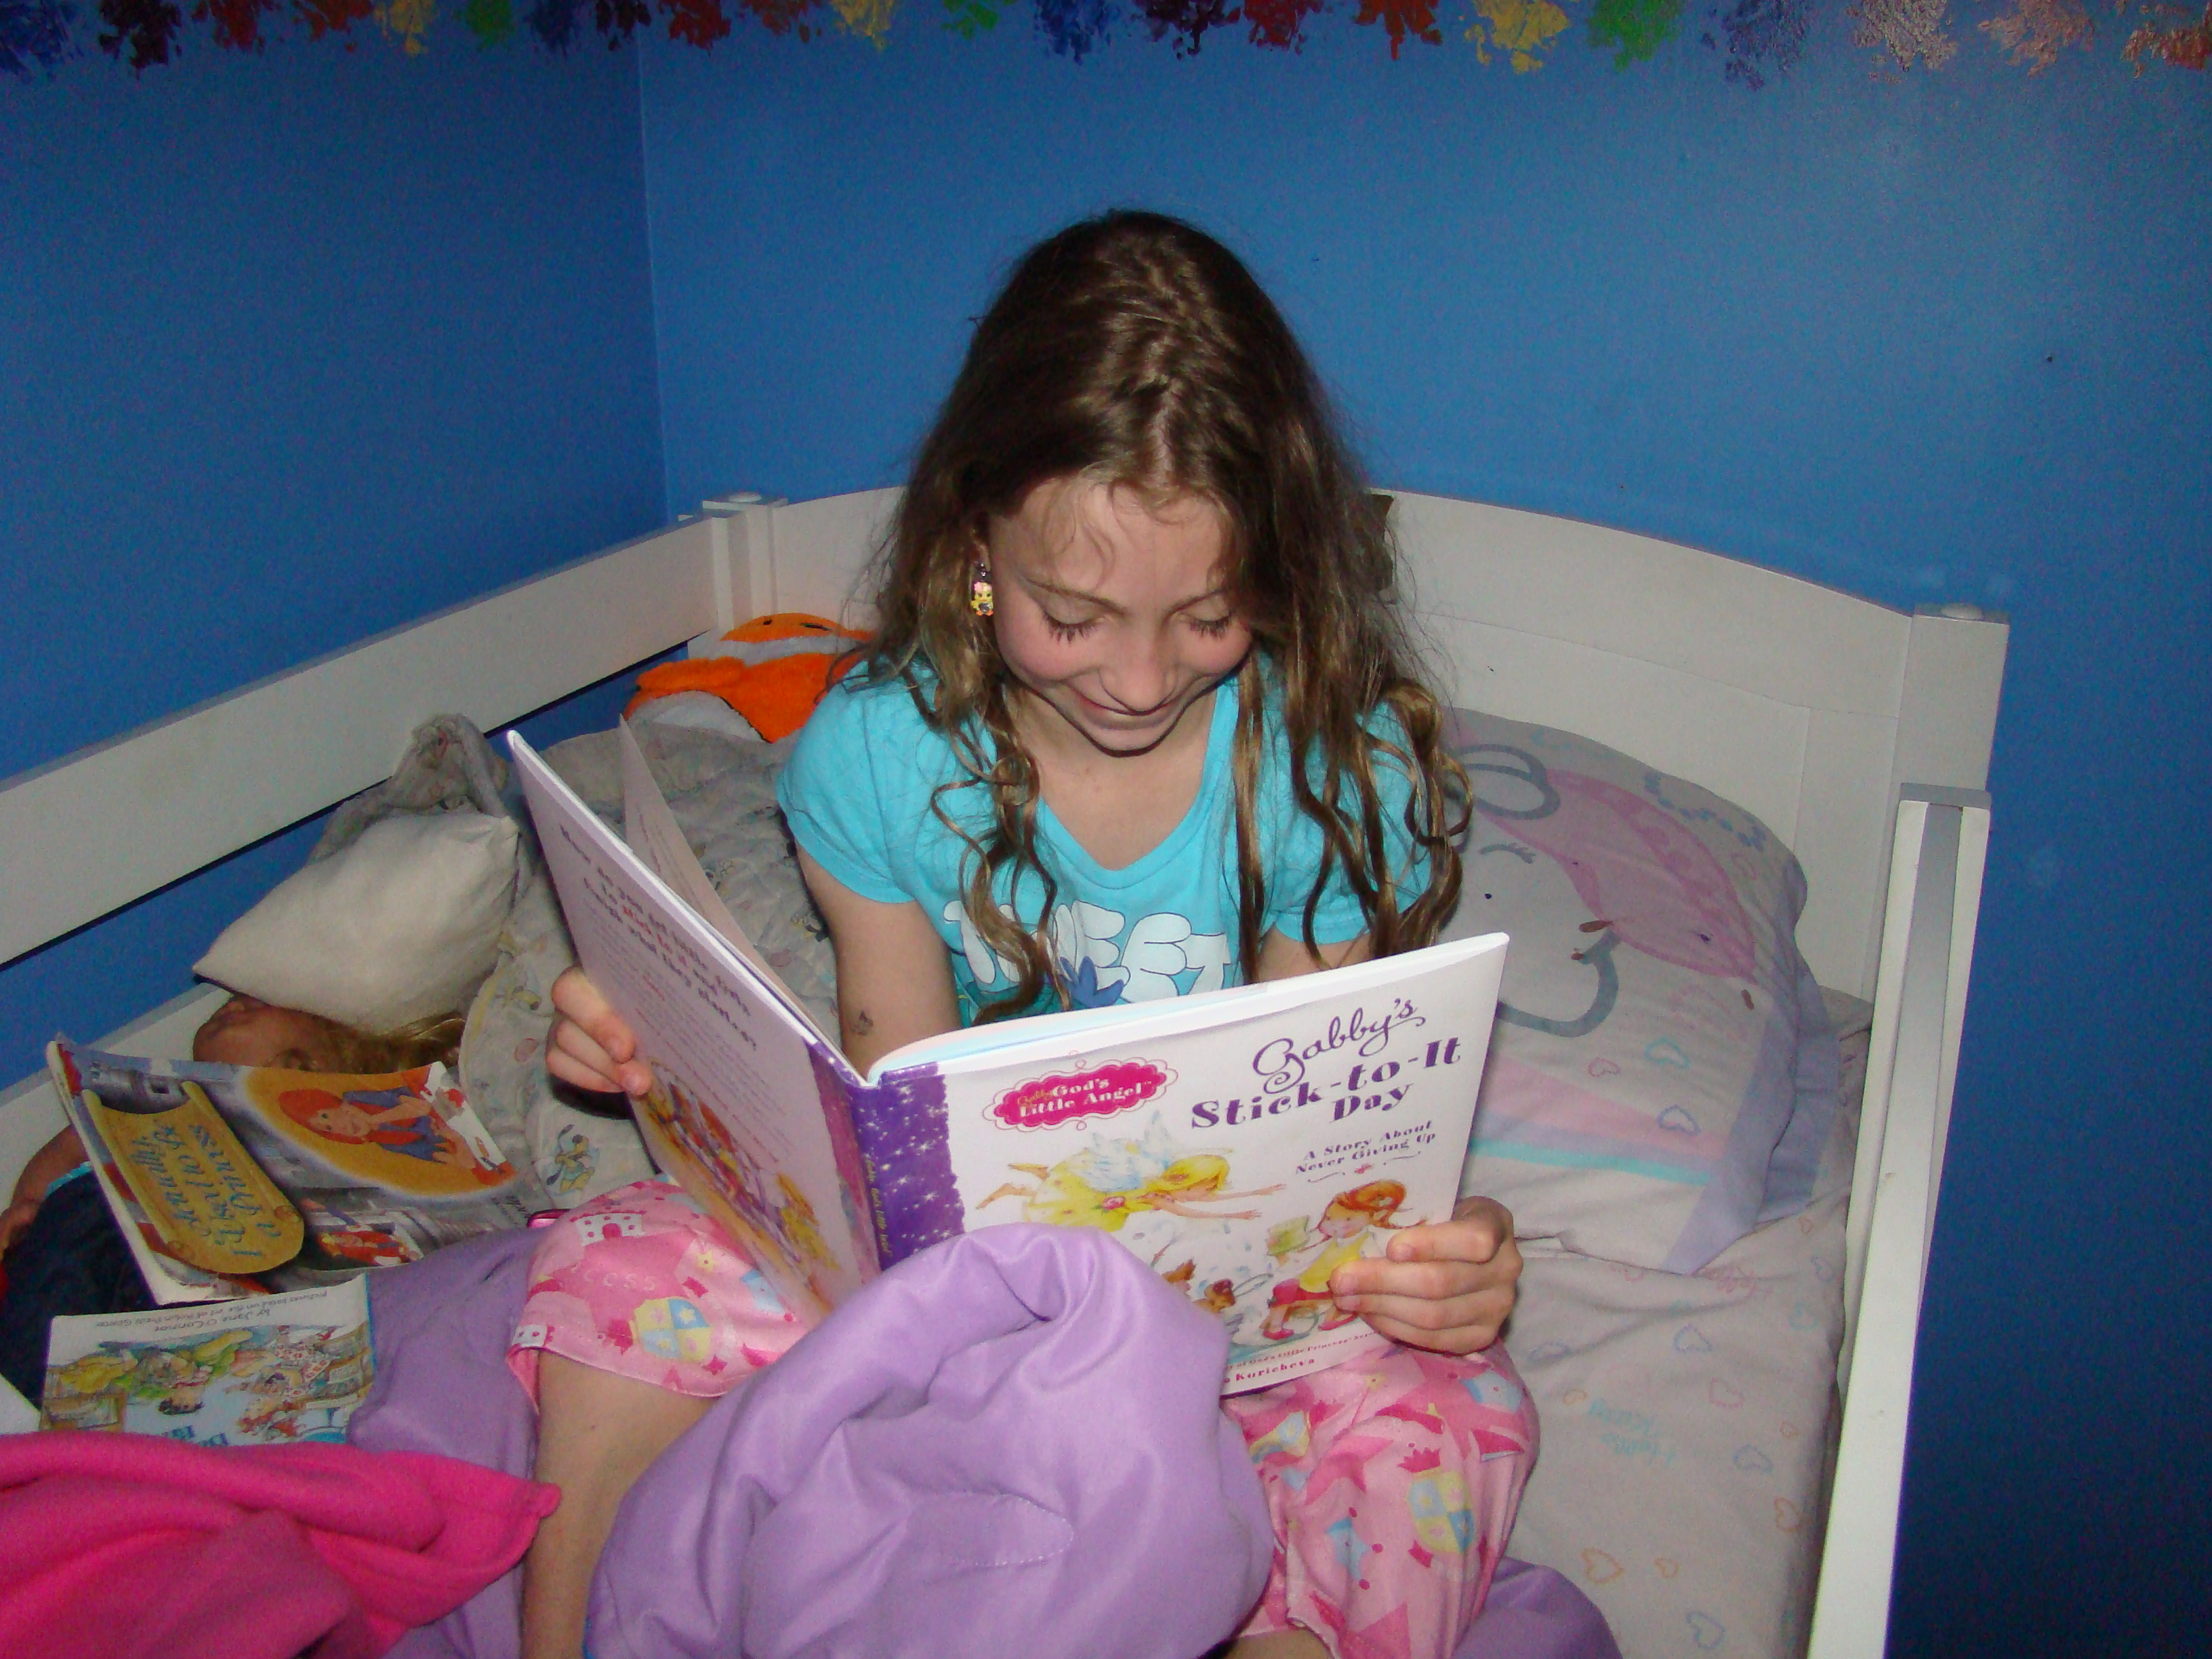 Gabby's Stick-to-it Day: Children's Book Giveaway